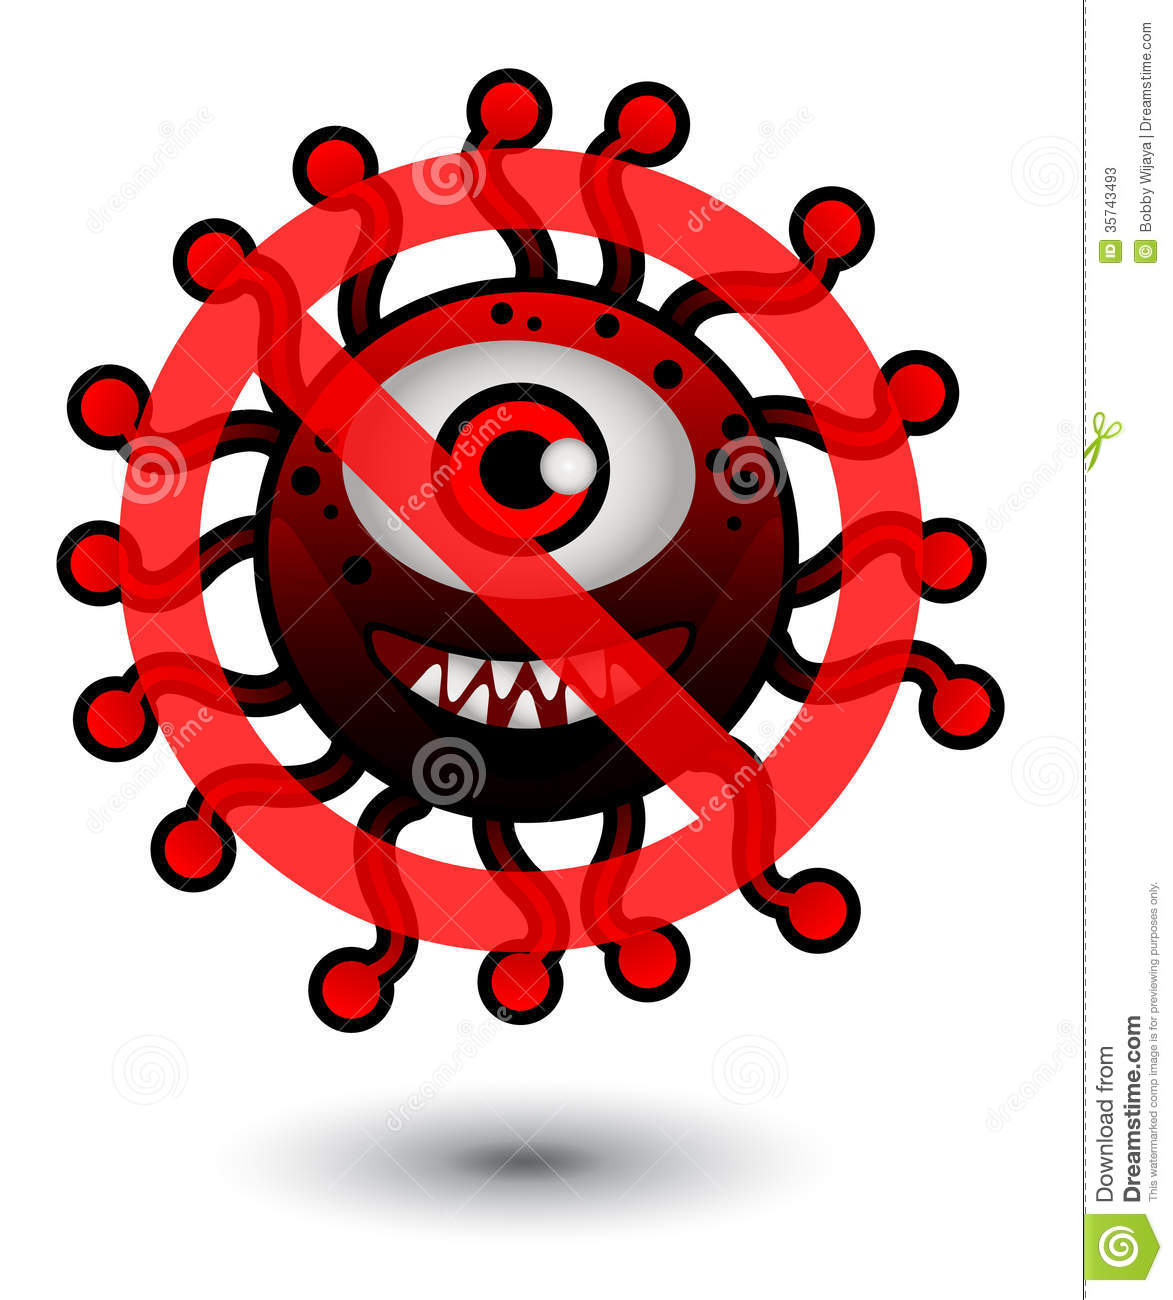 no virus cartoon illustration stock illustration